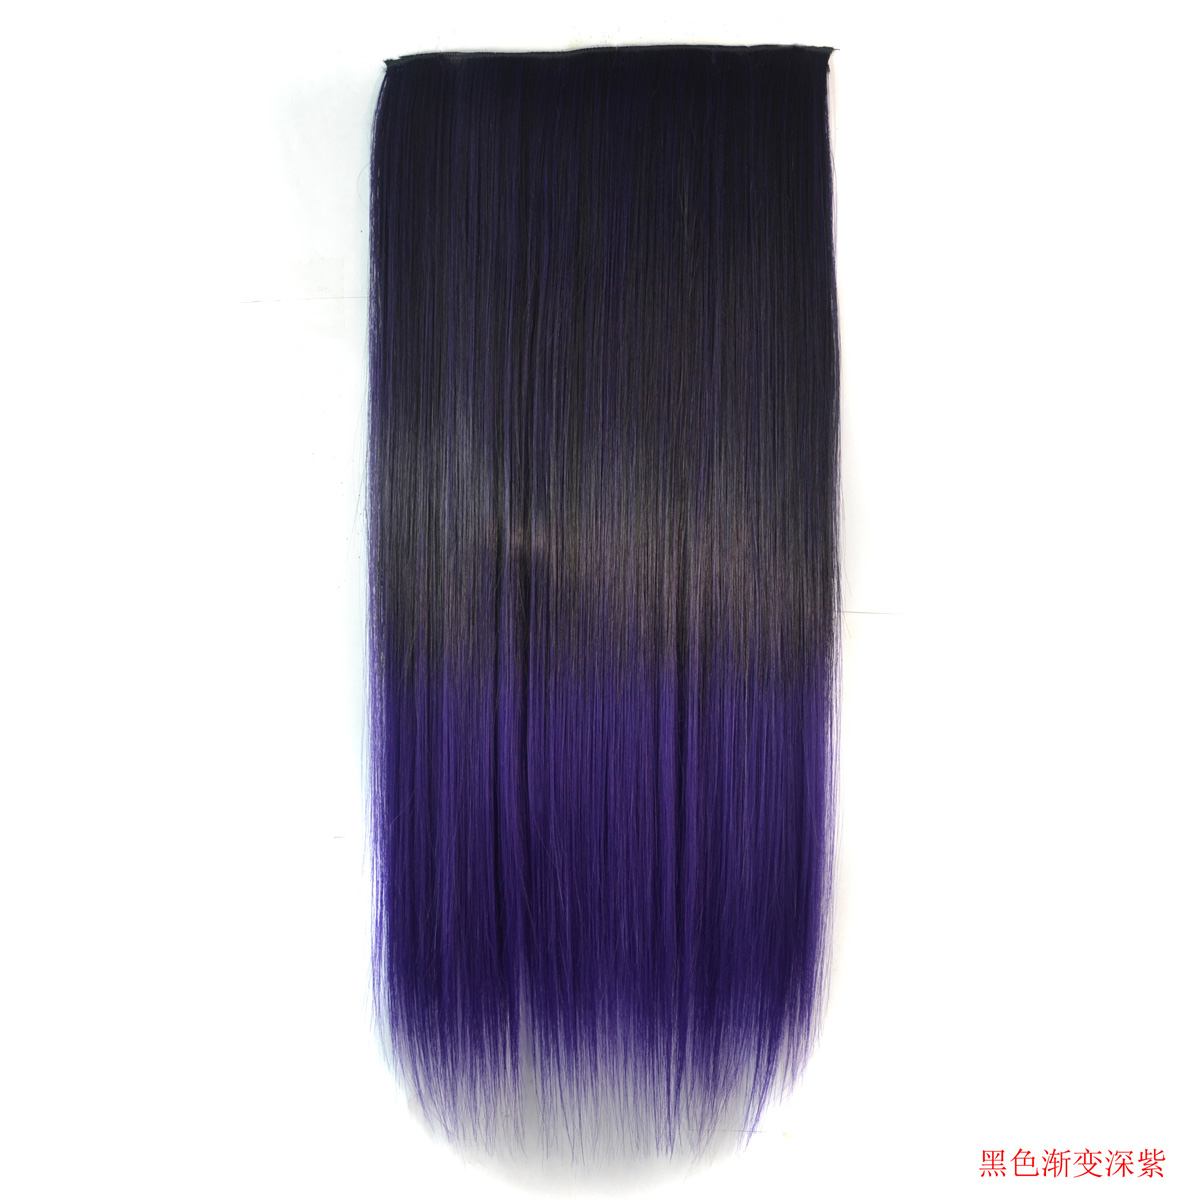 Black Dark Purple Ombre 60cm Long Straight Clip In Hair Extensions